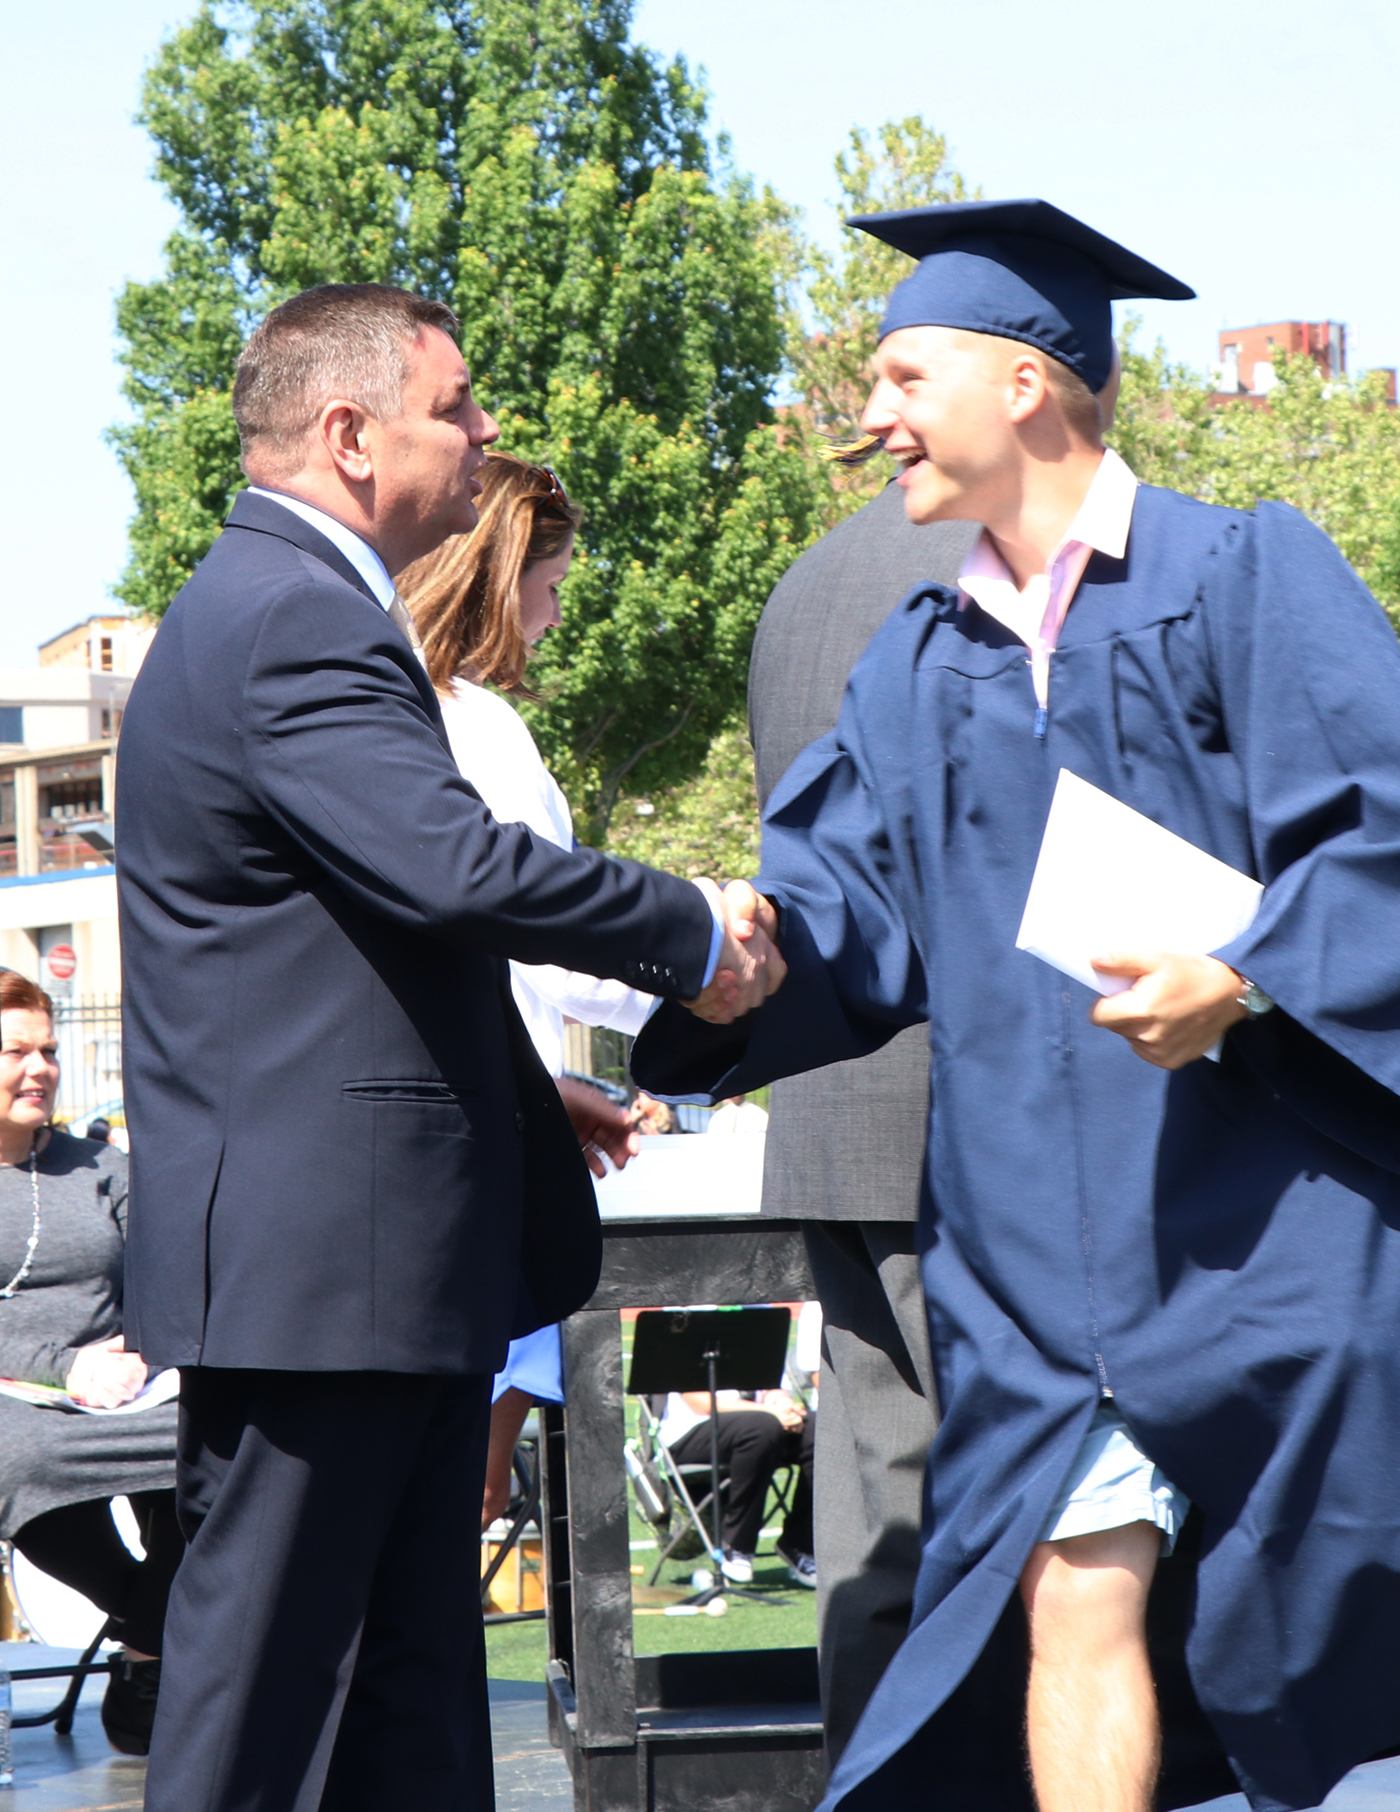 Superintendent Jon Oteri presents Michael Goroshko with his diploma.